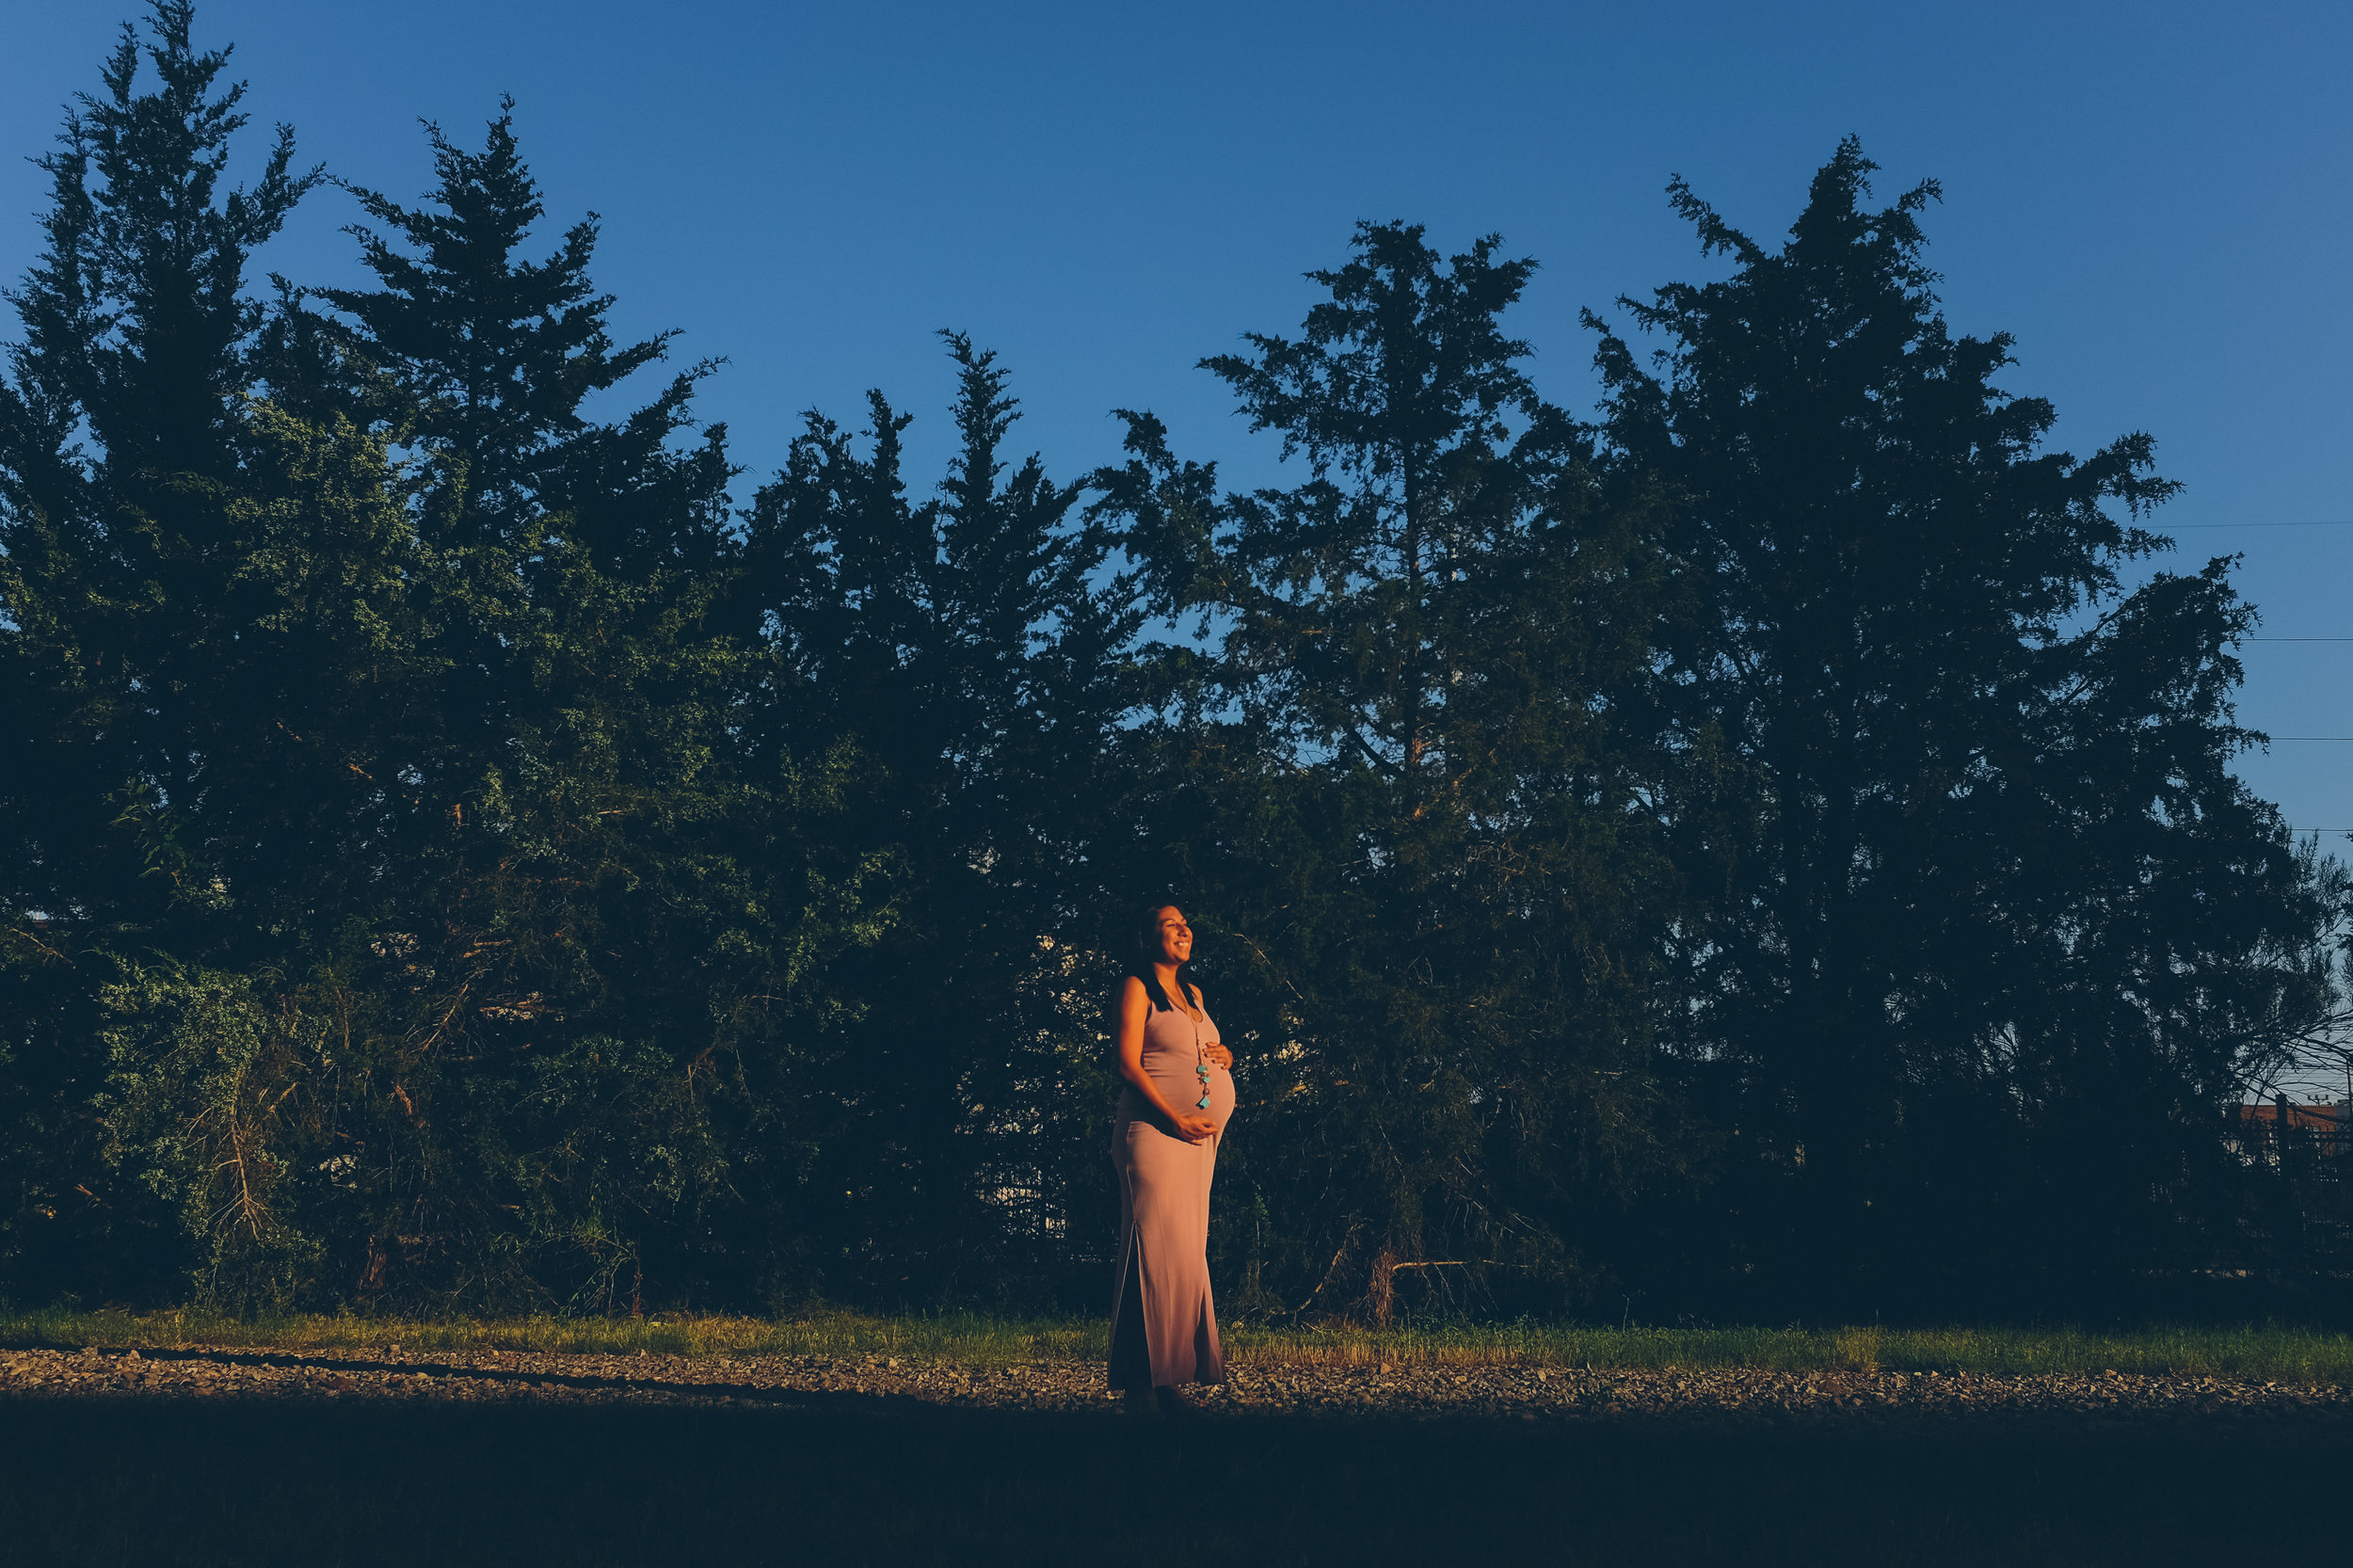 Photograph of pregnant woman in front of grove of trees